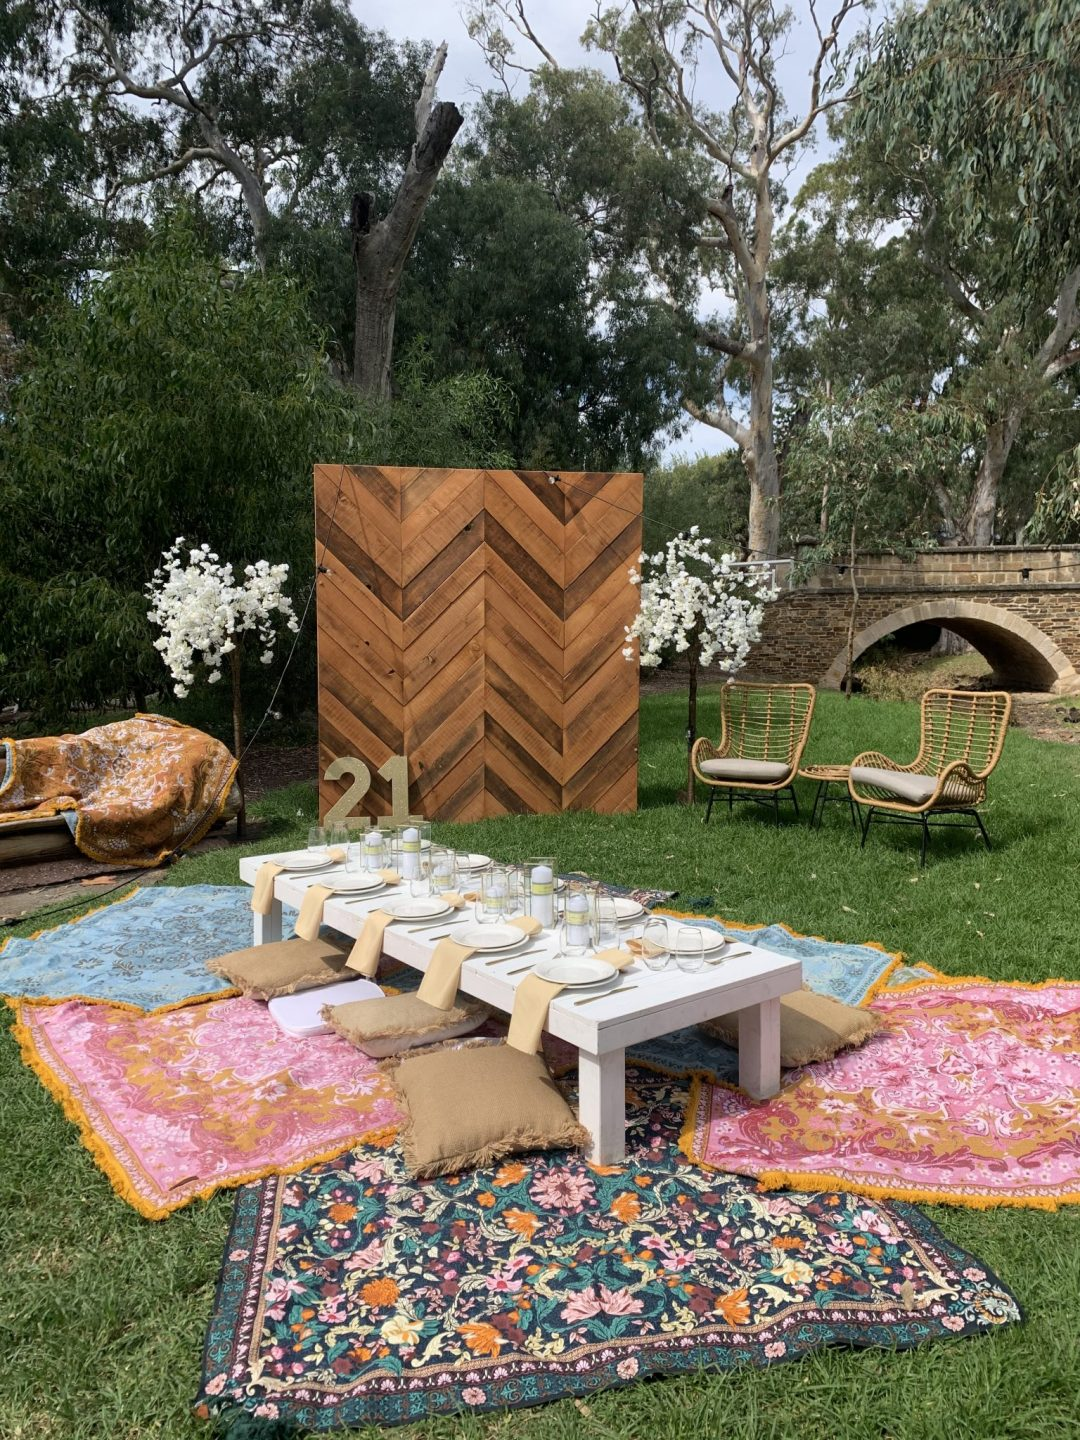 picnic-package-with-white-pallet-picnic-table-glass-candle-boxes-with-champagne-linen-napkins-AFC-crockery-and-standard-glassware-assorted-cushions-and-wandering-folk-rugs